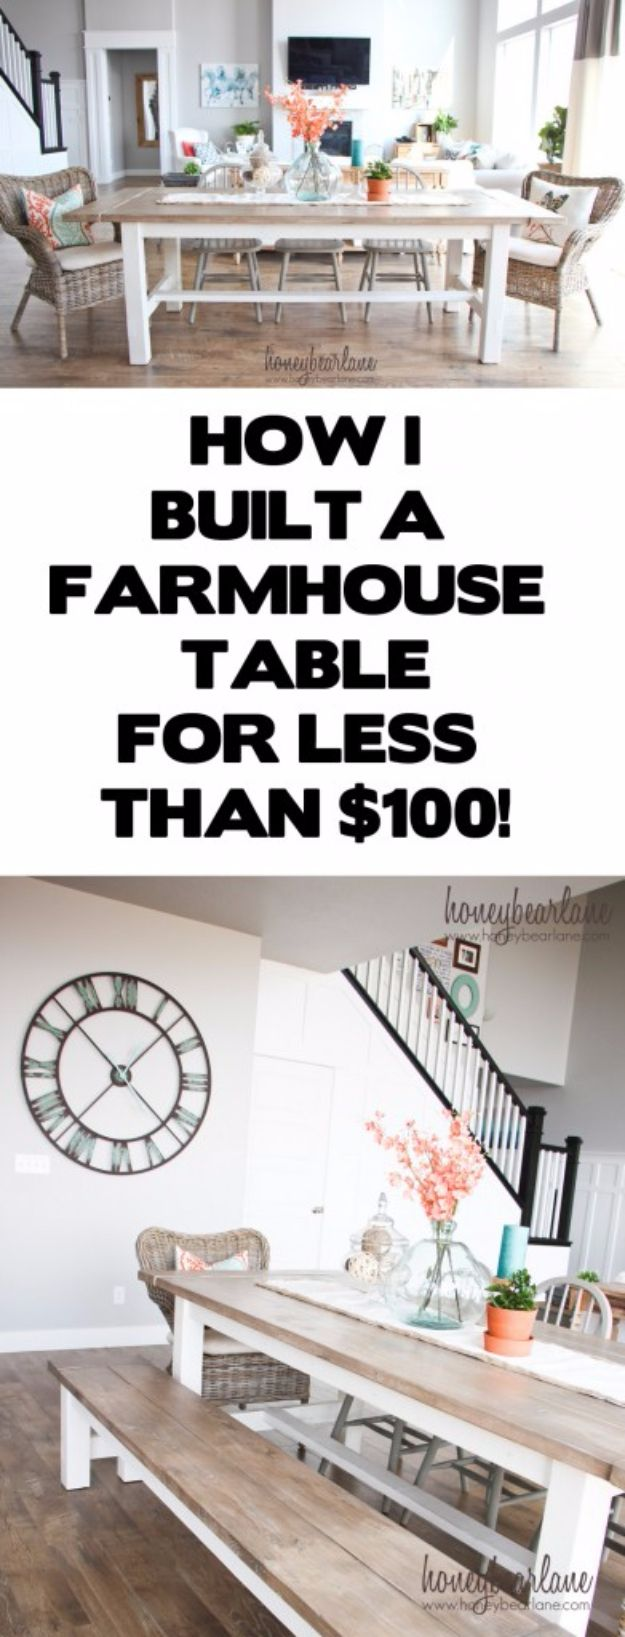 Diy dining room table projects diy farmhouse table for 100 diy dining room table projects diy farmhouse table for 100 creative do it yourself solutioingenieria Images